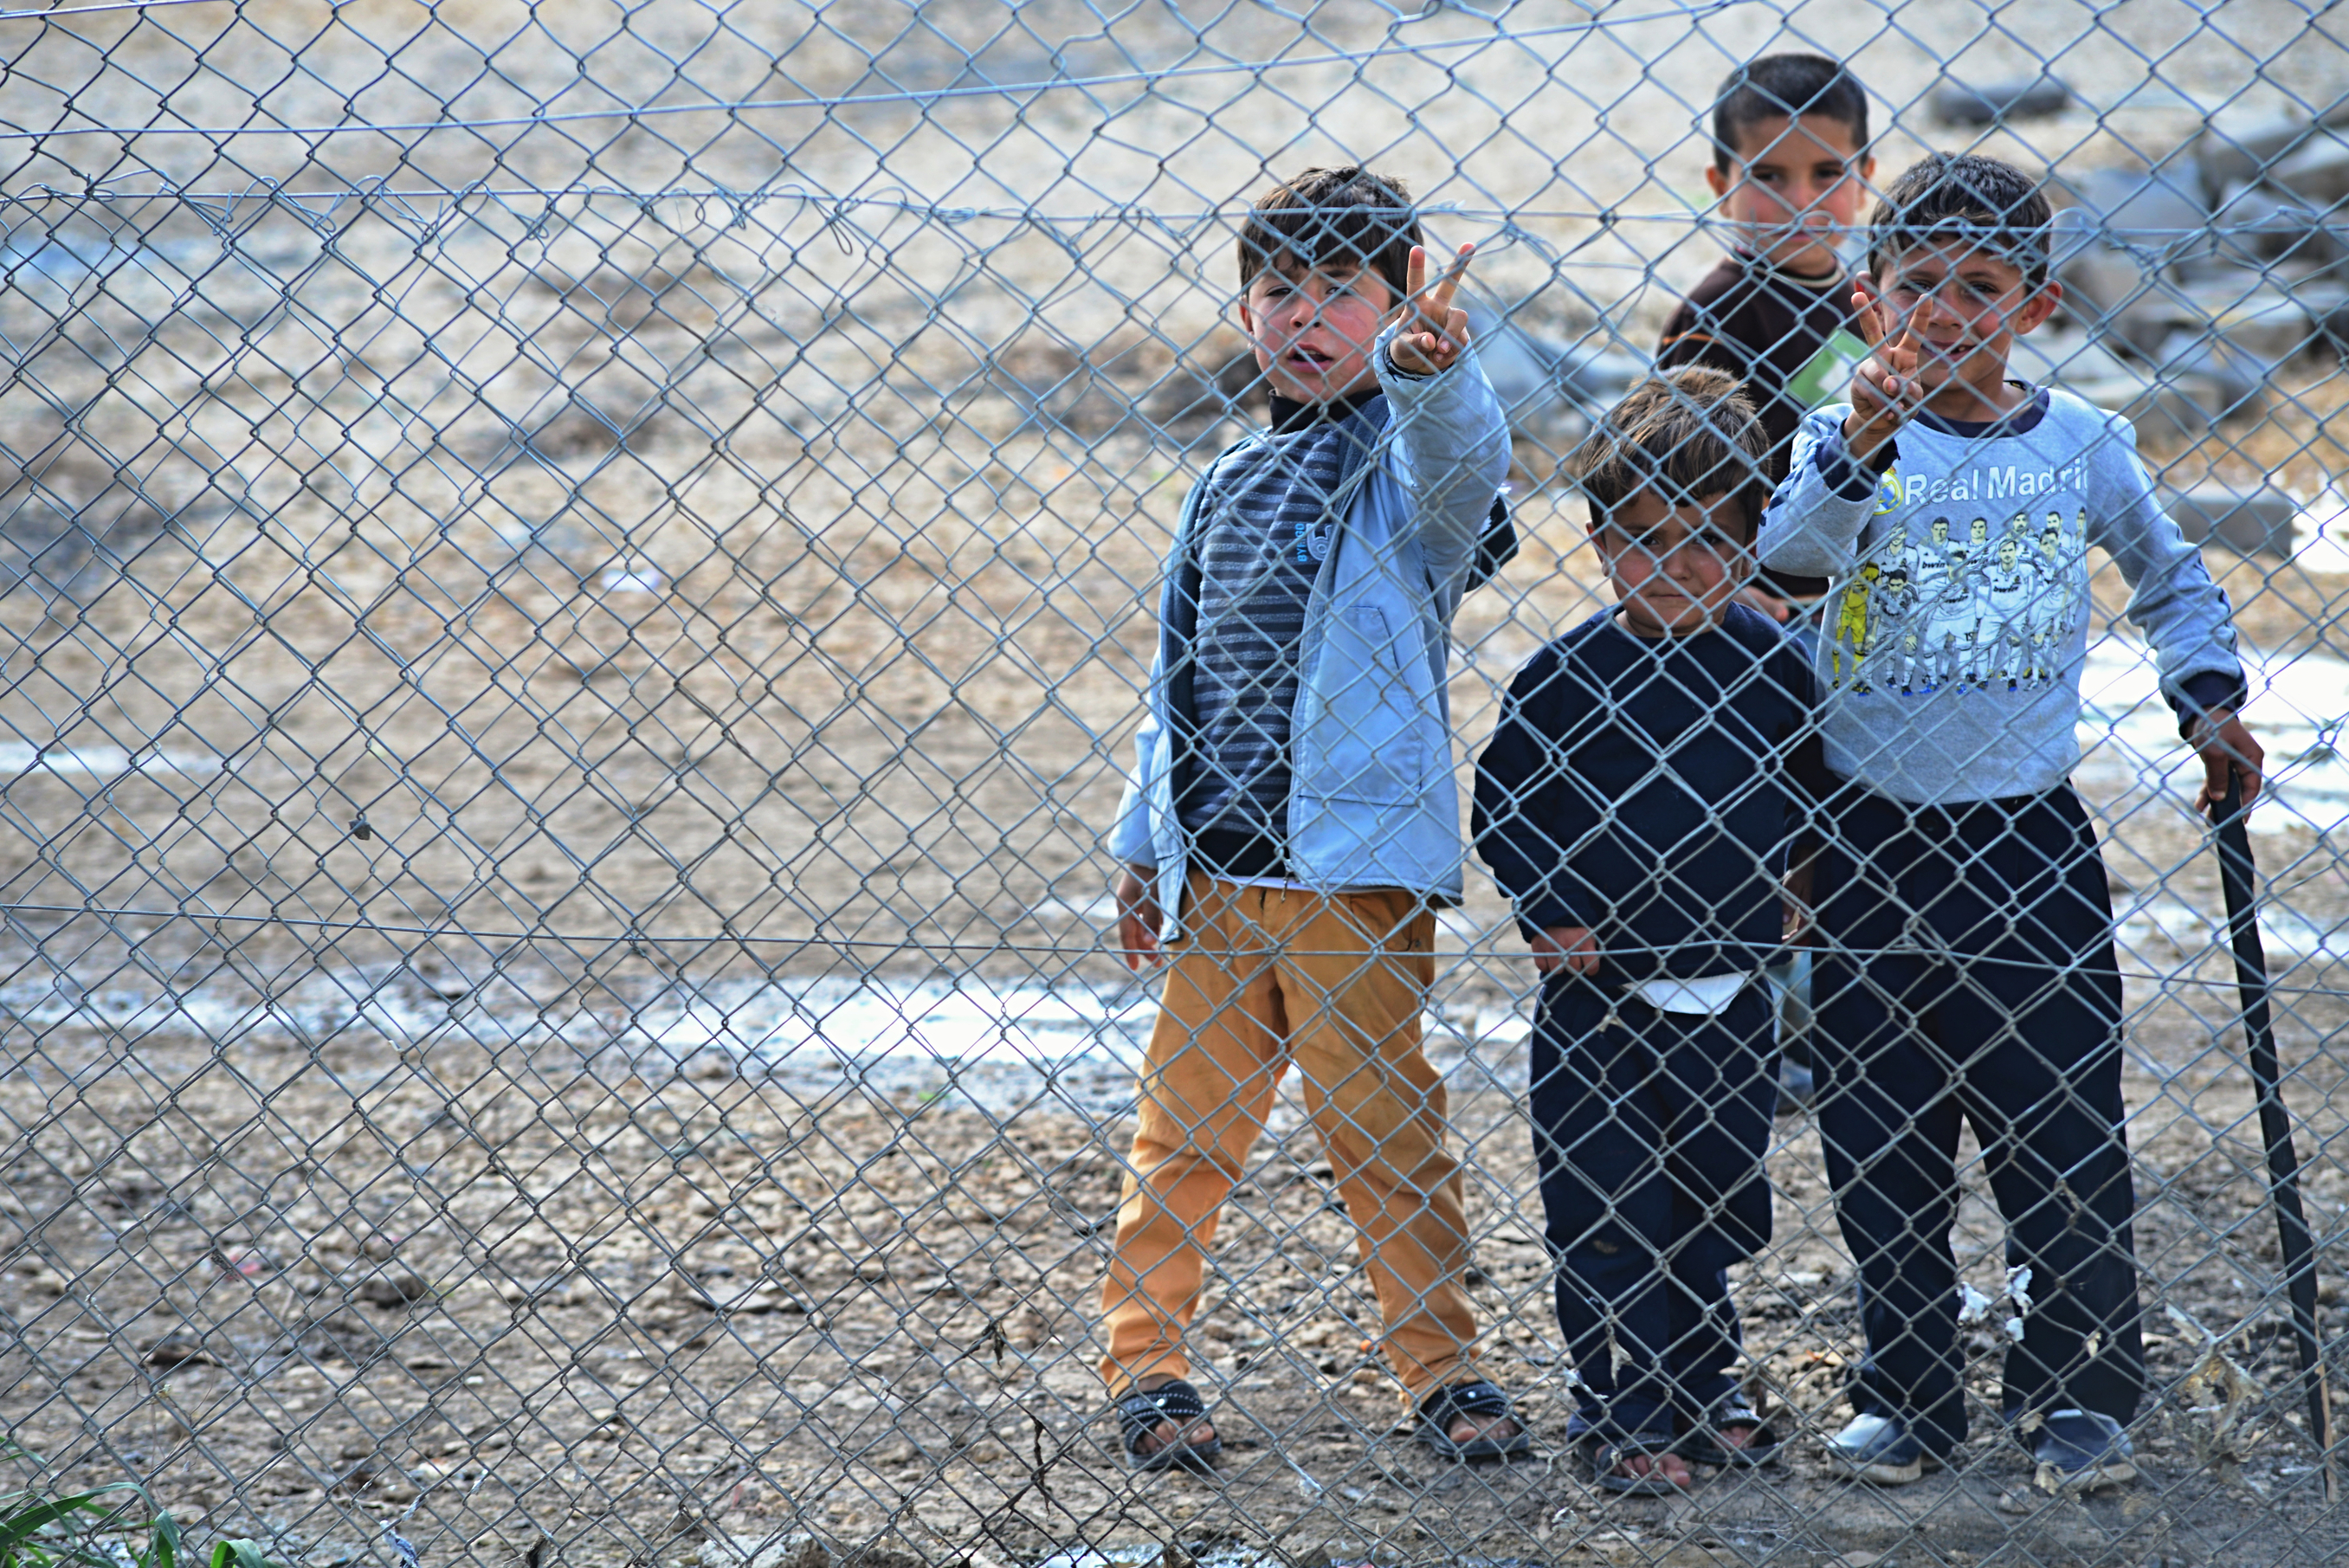 Suruc, Turkey - March 31, 2015: Syrian people in refugee camp in Suruc. These people are refugees from Kobane and escaped because of Islamic state attack.